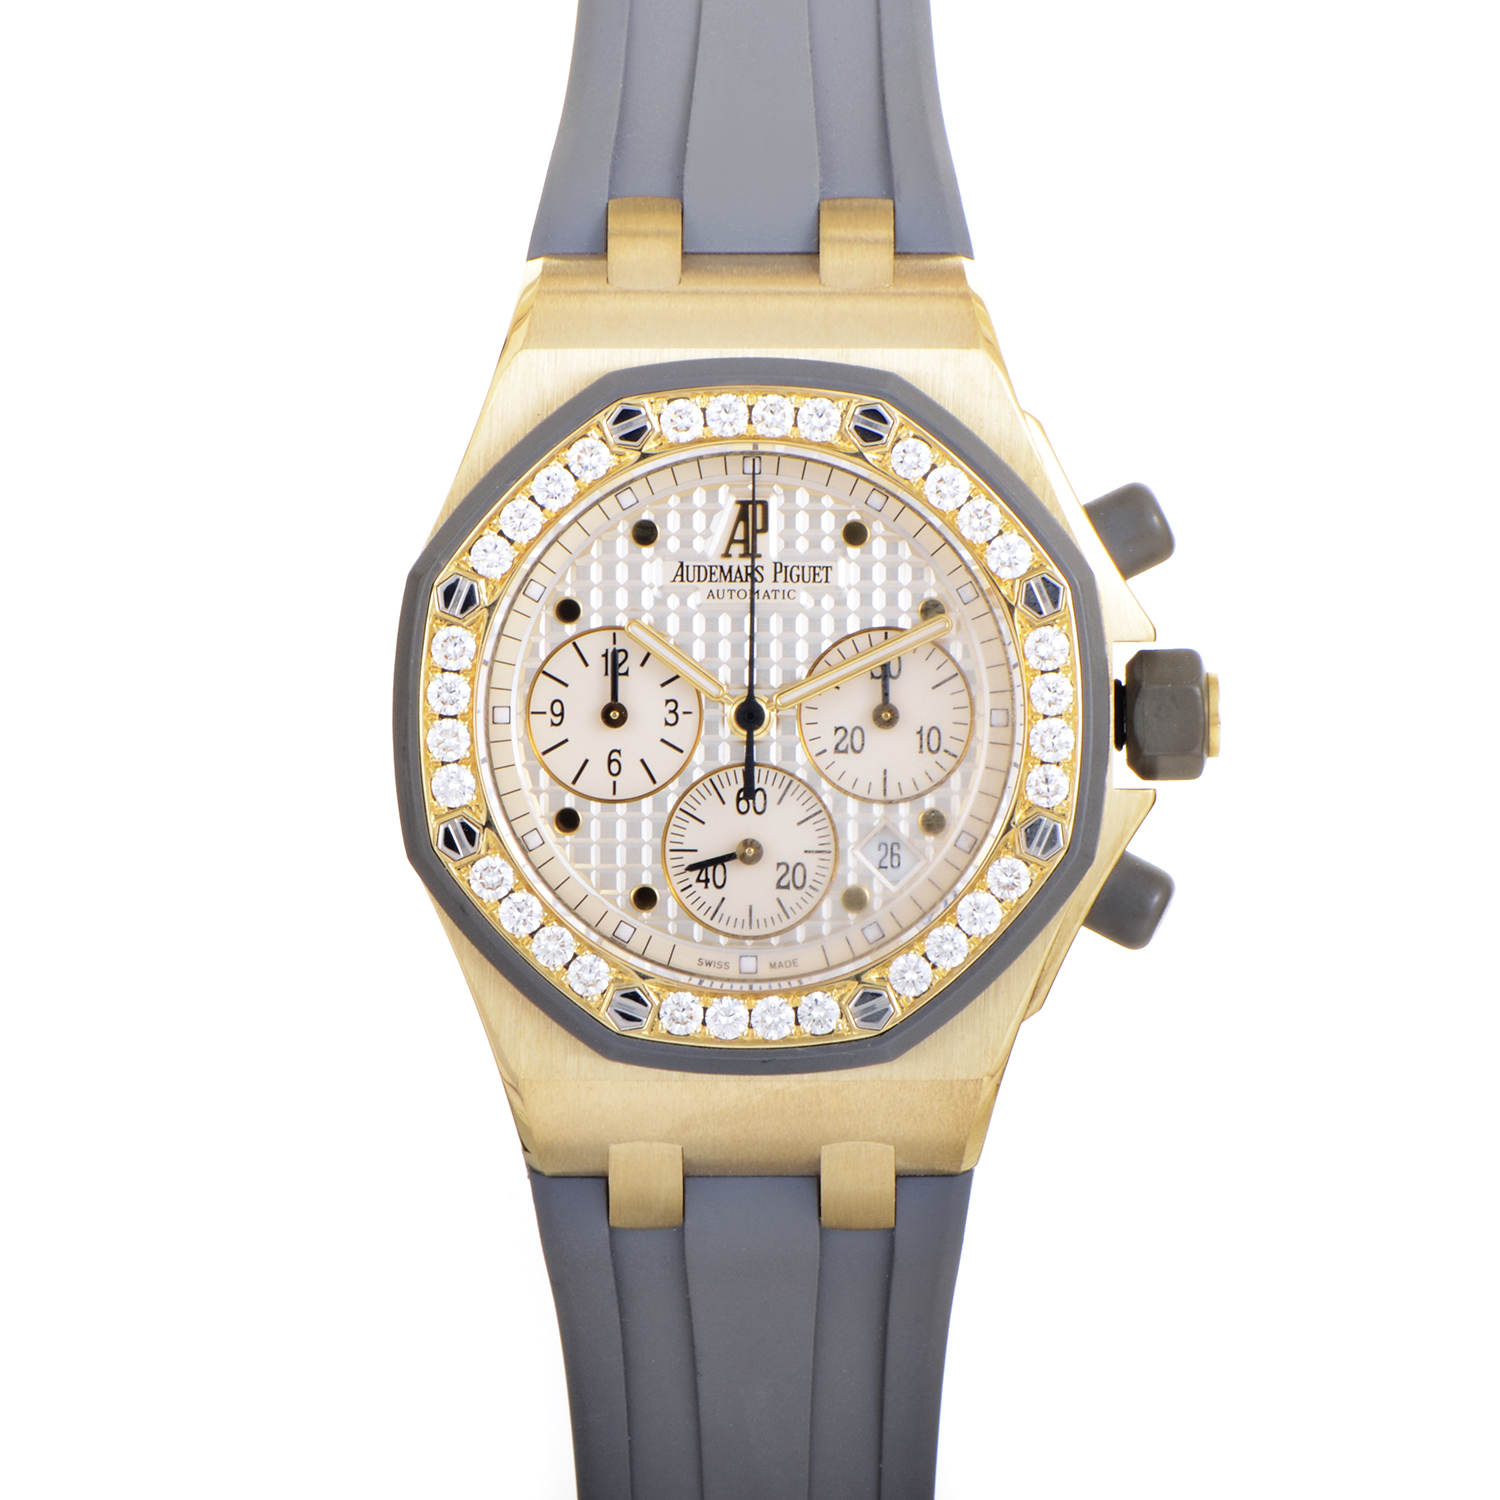 royal oak single mature ladies Audemars piguet royal oak lady - buy online, authentic watches, buy the original in online store price list men's and women's watches audemars piguet royal oak lady for sale at a special price.